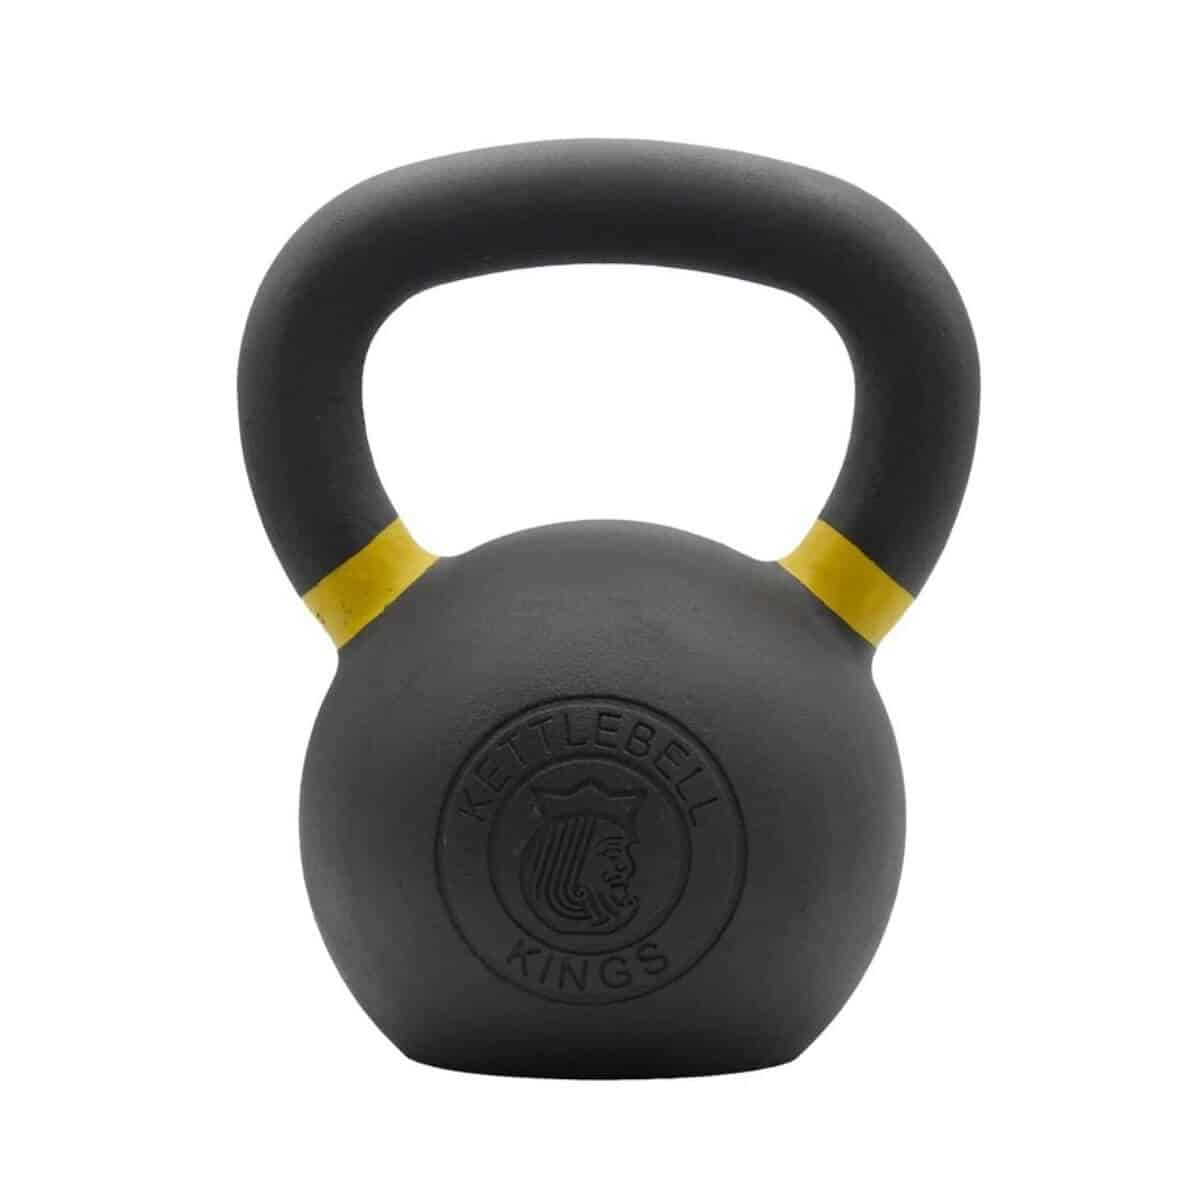 Black kettlebell with yellow rings.